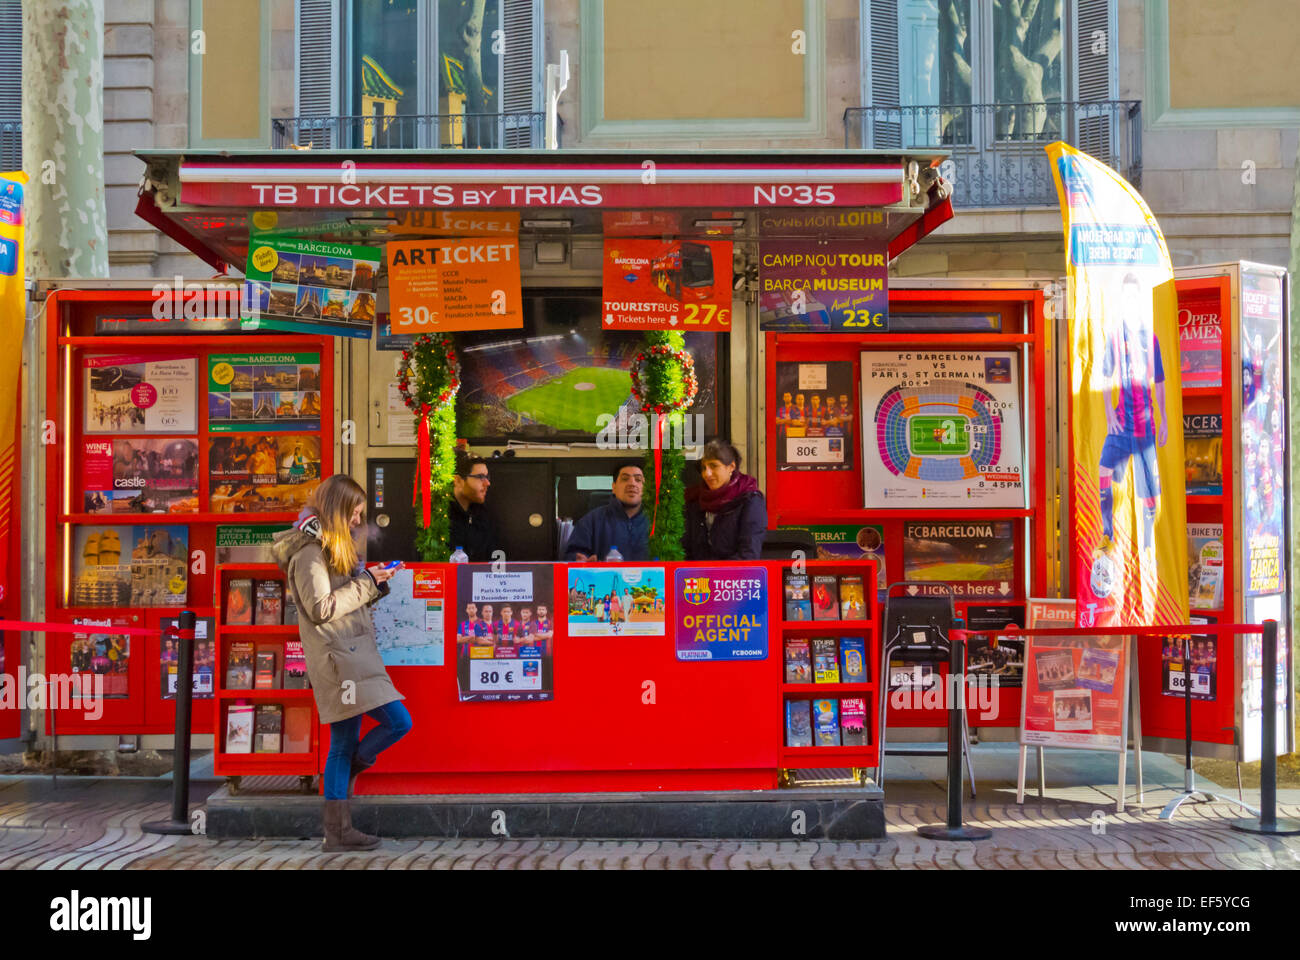 Booth selling FC Barcelona tickets and other tickets, Las Ramblas, Barcelona, Spain - Stock Image